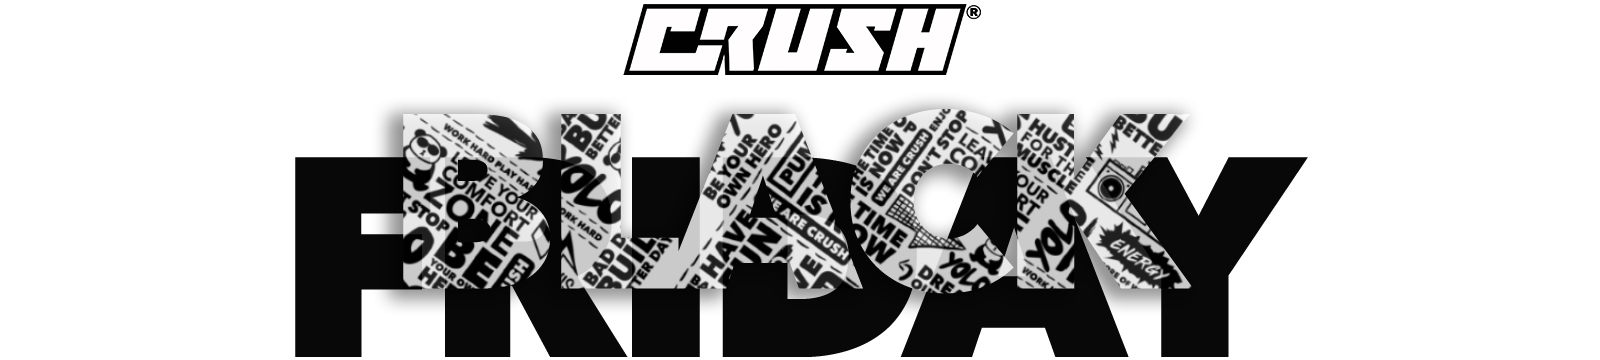 Crush Fit Black Friday Sale